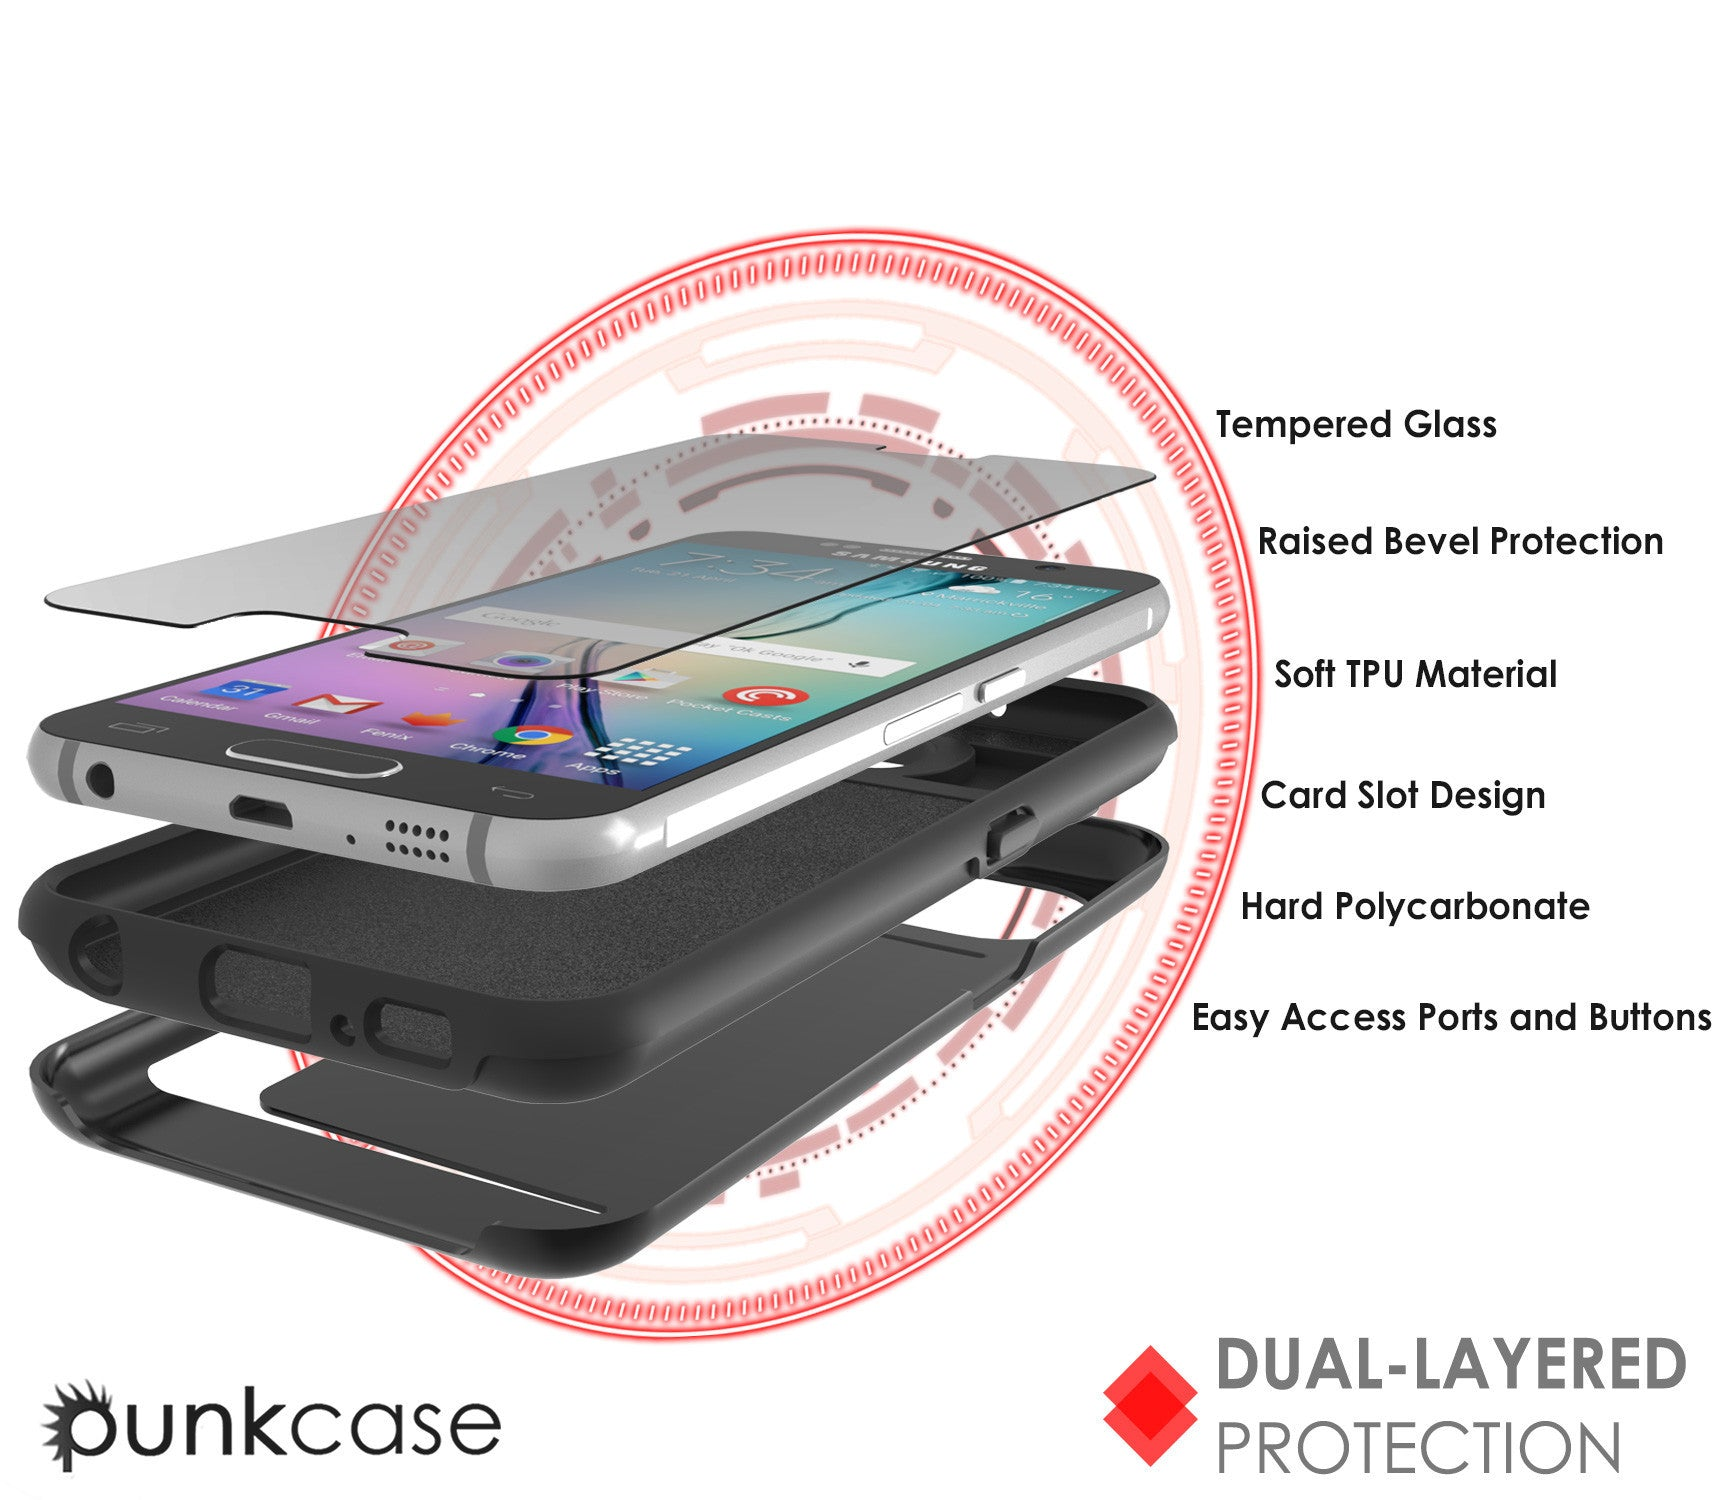 Galaxy S6 EDGE Case PunkCase CLUTCH Black Series Slim Armor Soft Cover Case w/ Screen Protector